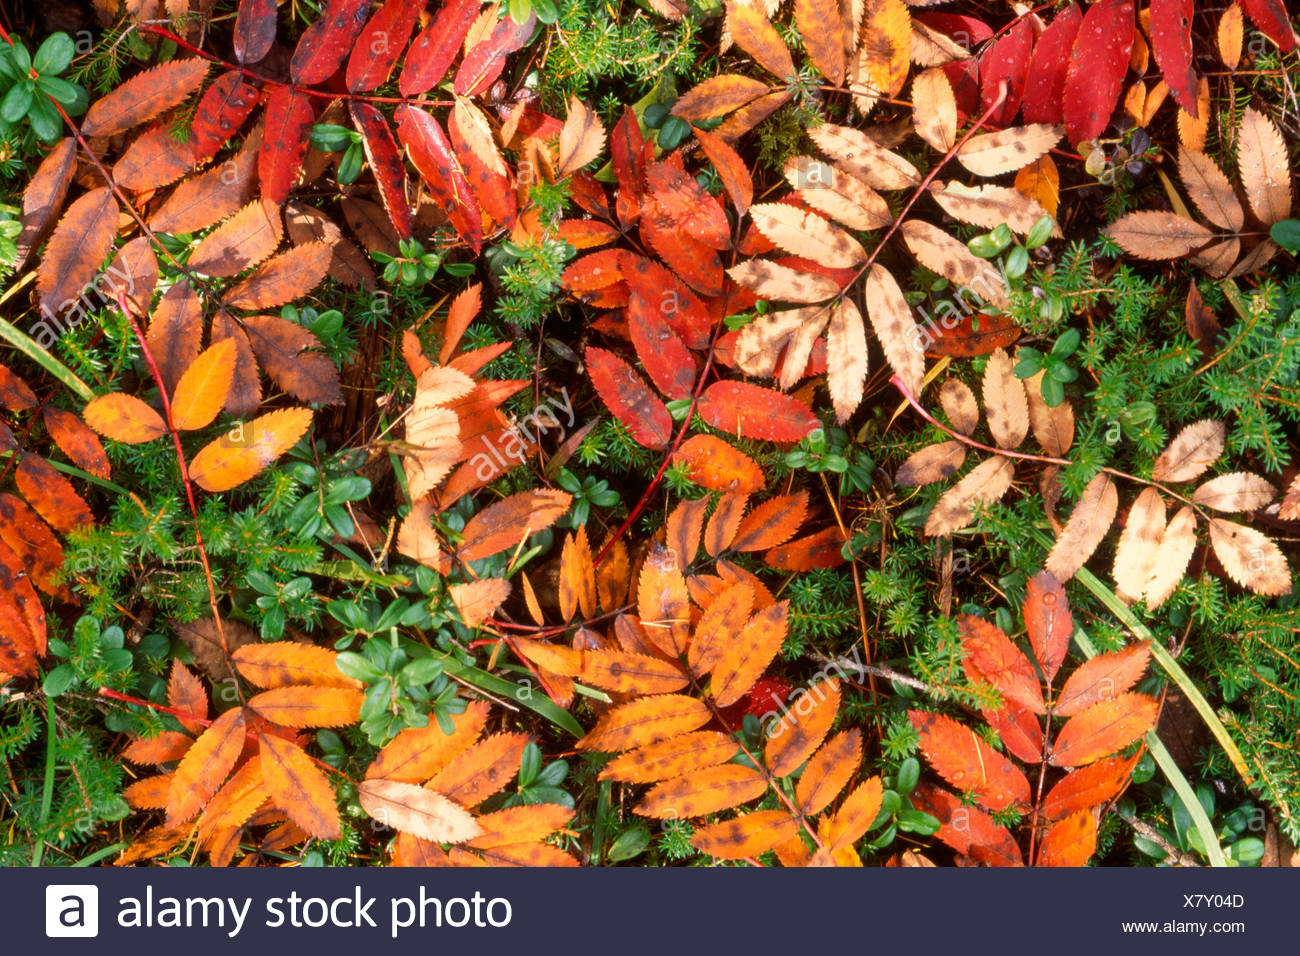 Autumn leaves of European Rowan (Sorbus aucuparia) covering the forest floor, Pragser Wildsee, Bolzano-Bozen, Italy, Europe Stock Photo